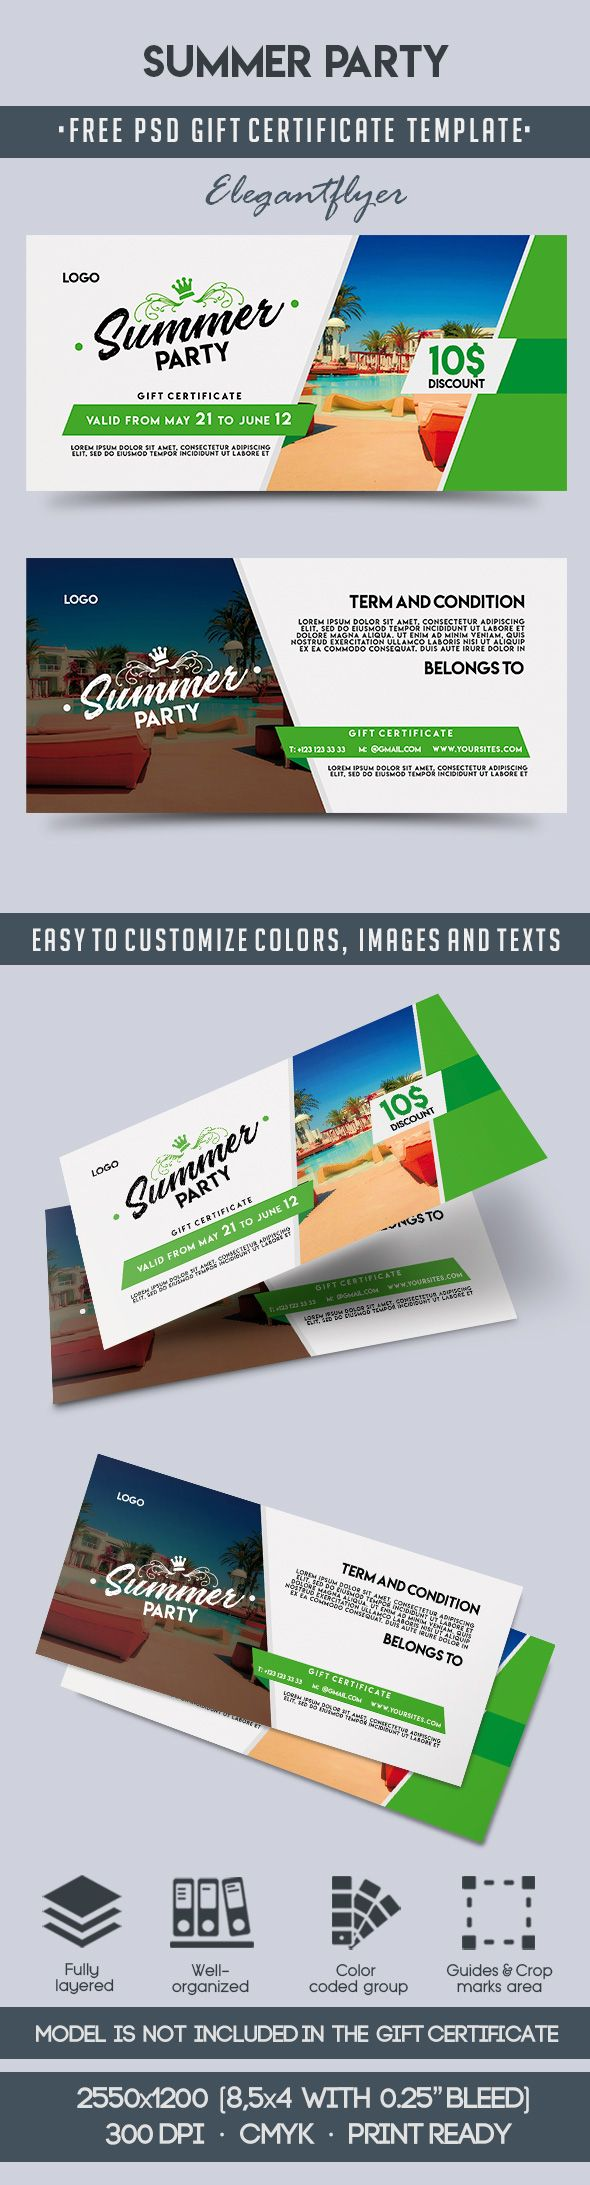 Summer Party – Free Gift Certificate PSD Template